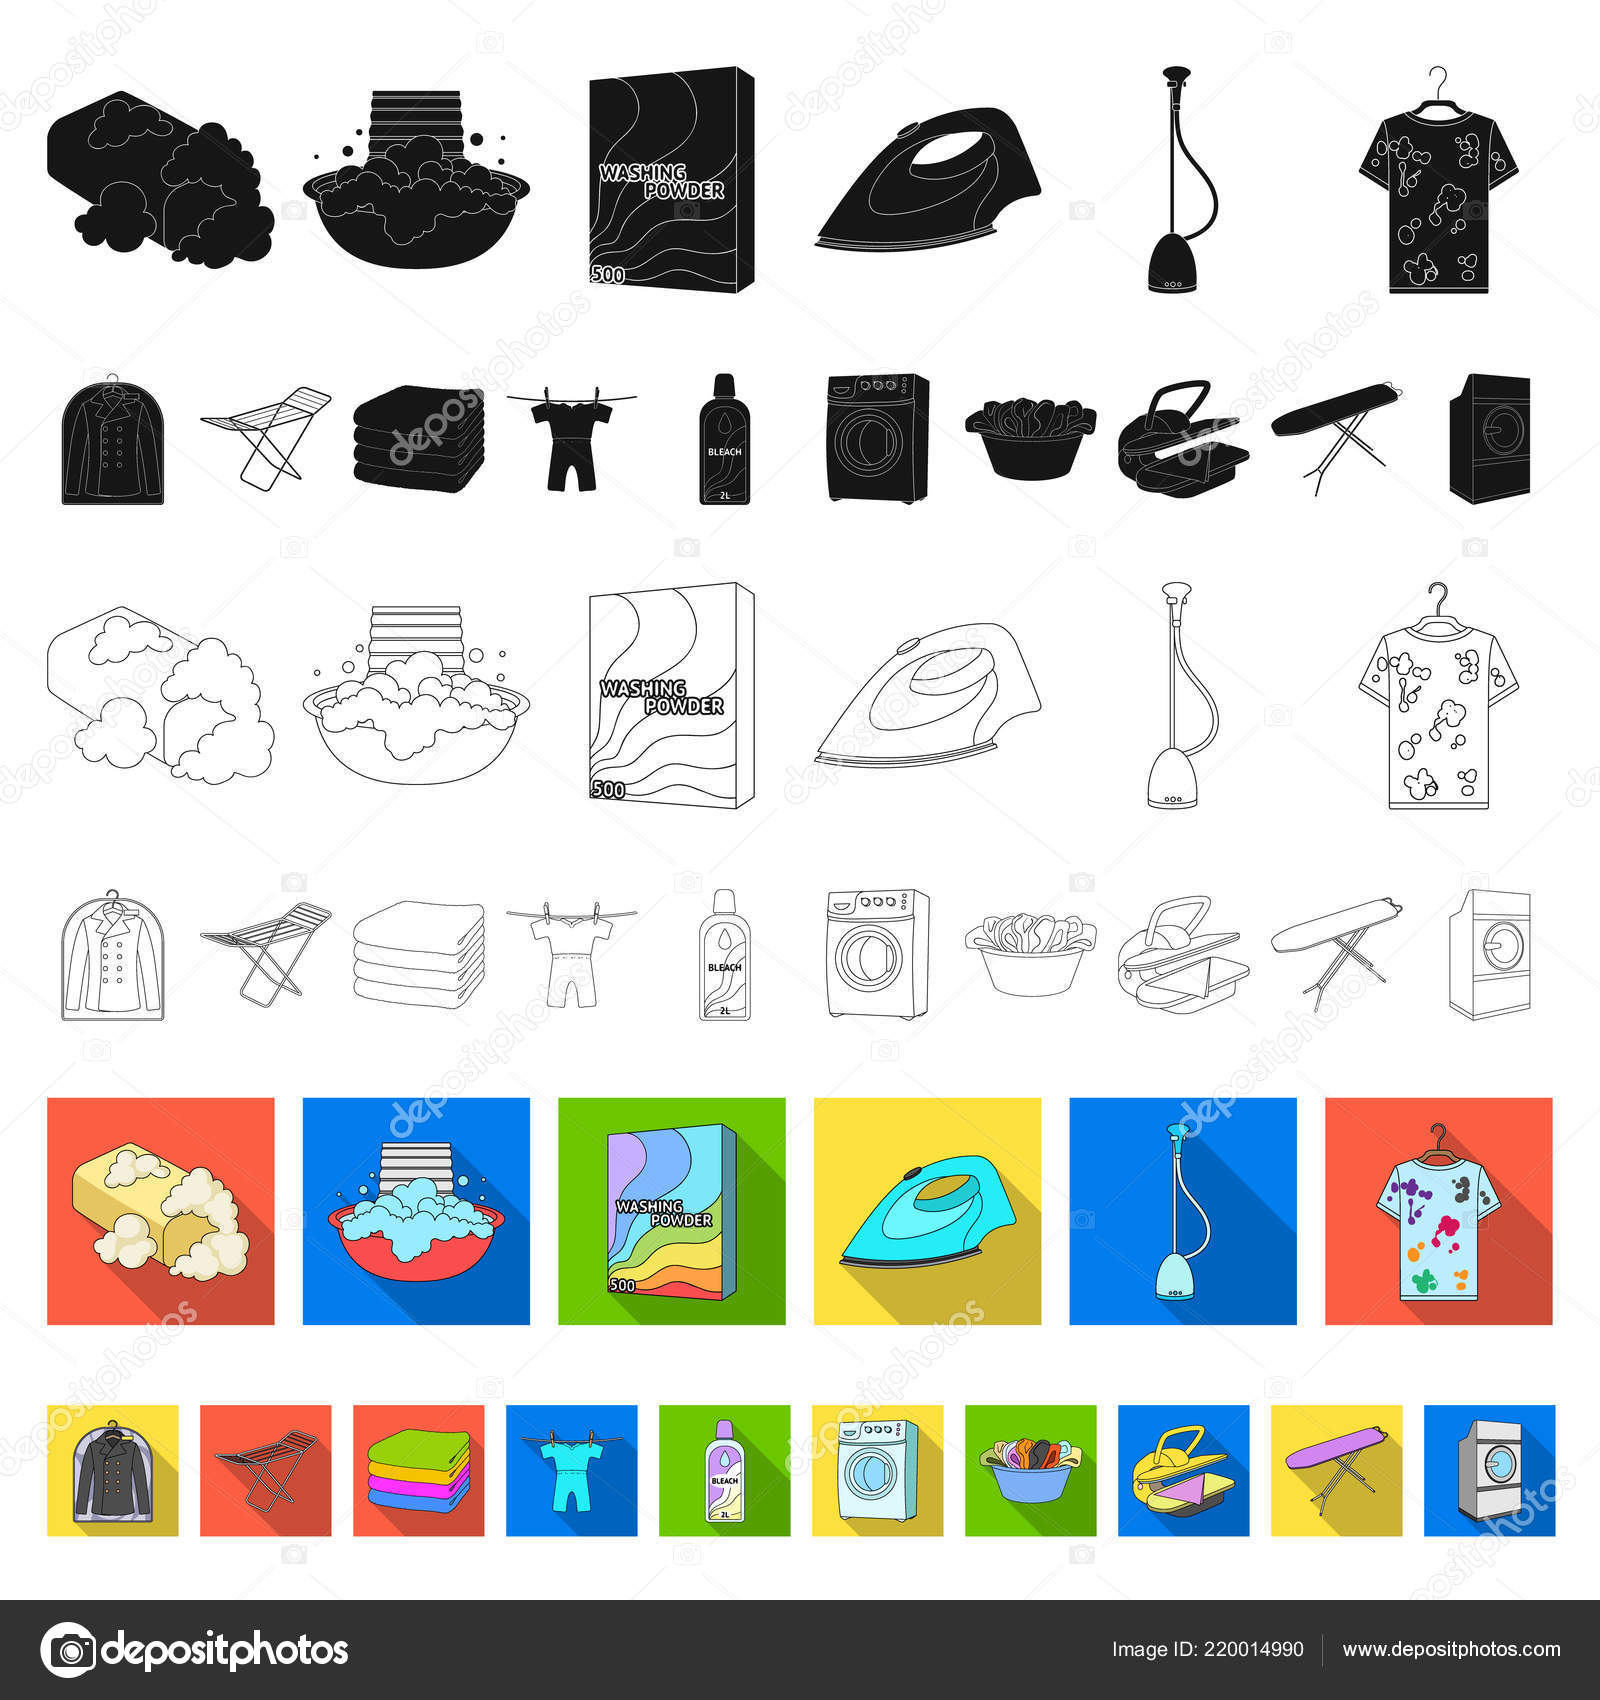 Dry Cleaning Equipment Flat Icons In Set Collection For Design